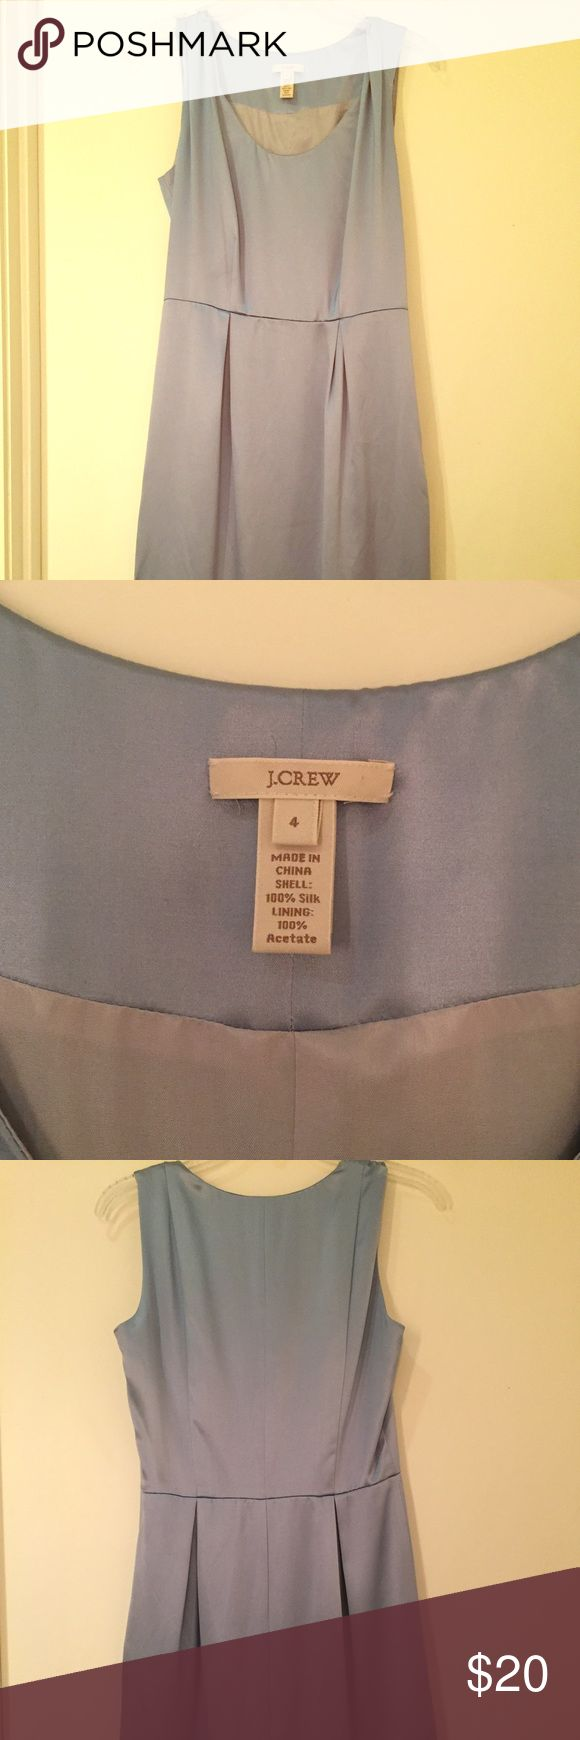 J Crew Bridesmaid dress in Periwinkle (size 4). Never worn J Crew dress that I bought on a whim. Great condition--100% silk lining.  Dry clean only. J. Crew Dresses Mini